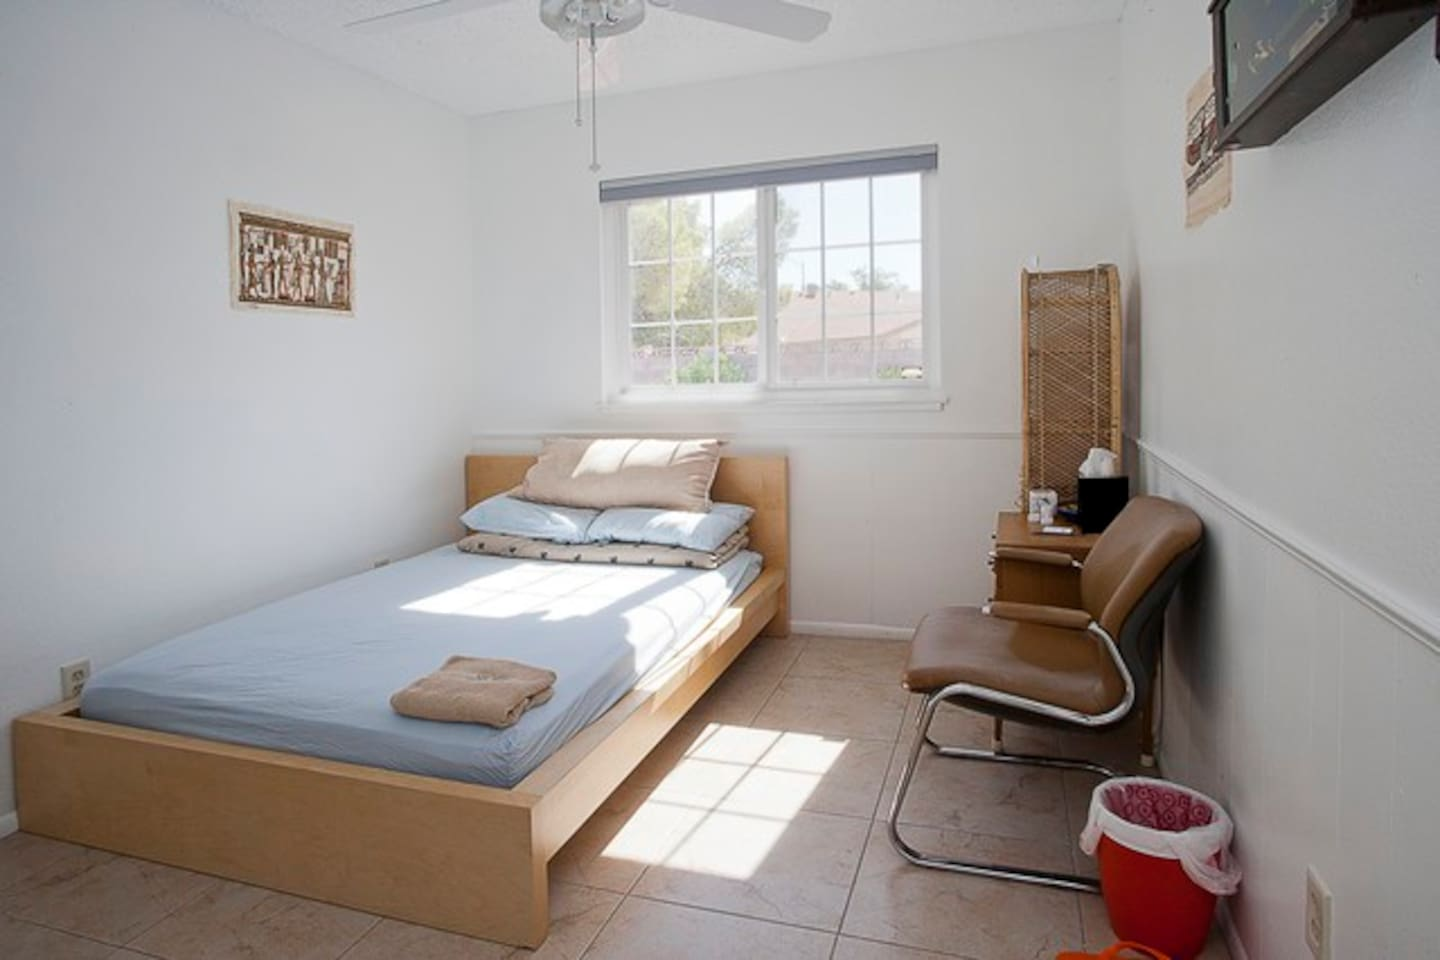 Chan 39 S House Bedroom 3 B3 Or B2 Houses For Rent In